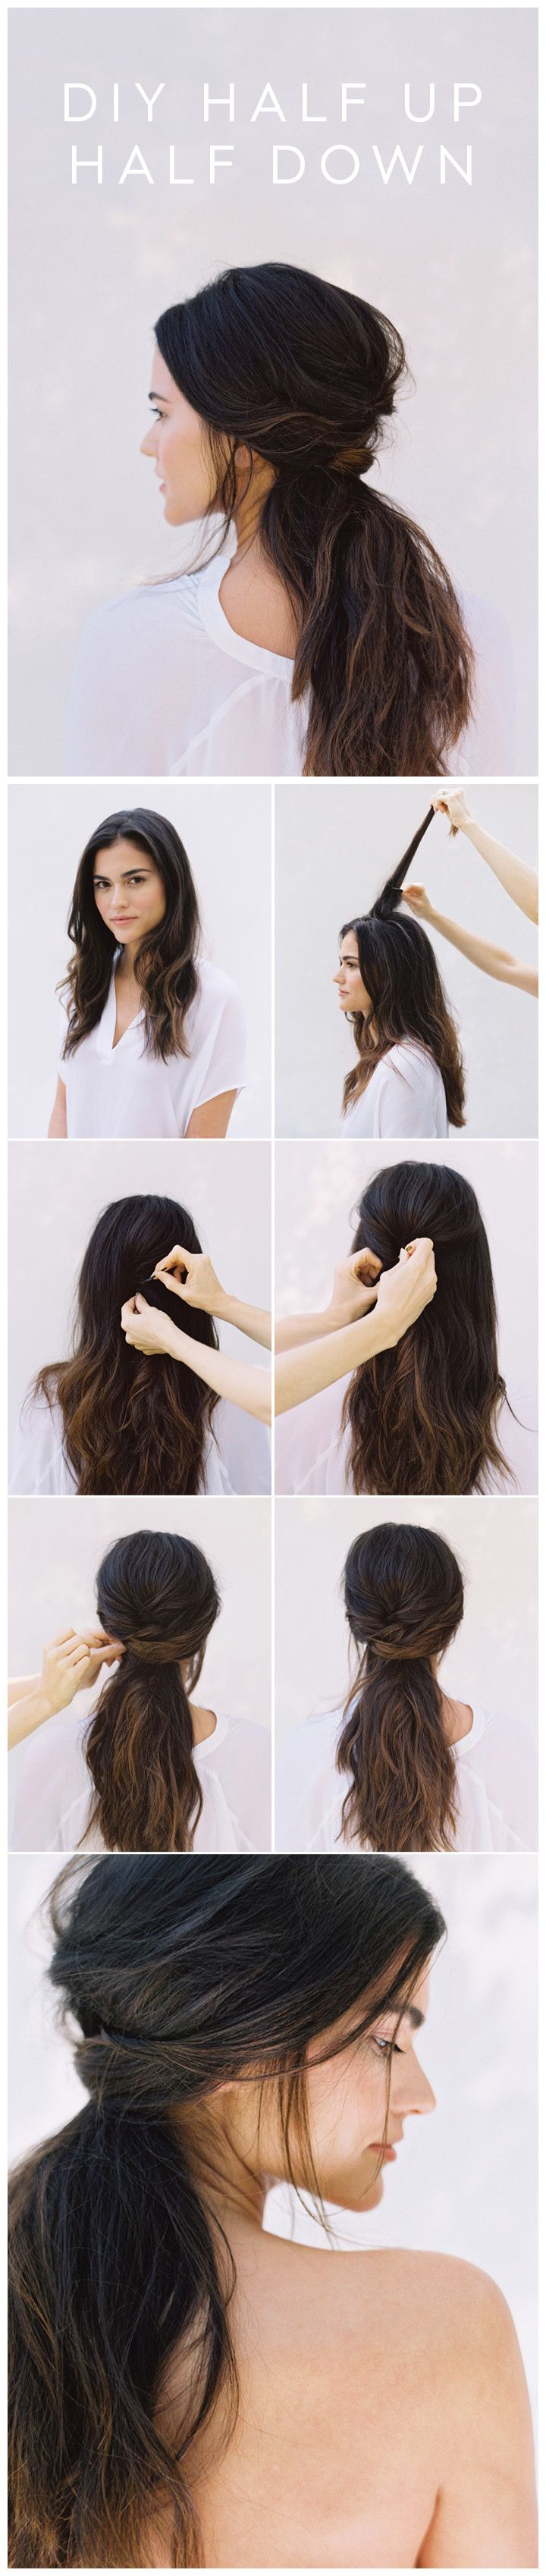 DIY HALF UP HALF DOWN HAIR | Wedding | Pinterest | Hair style, Hair ...